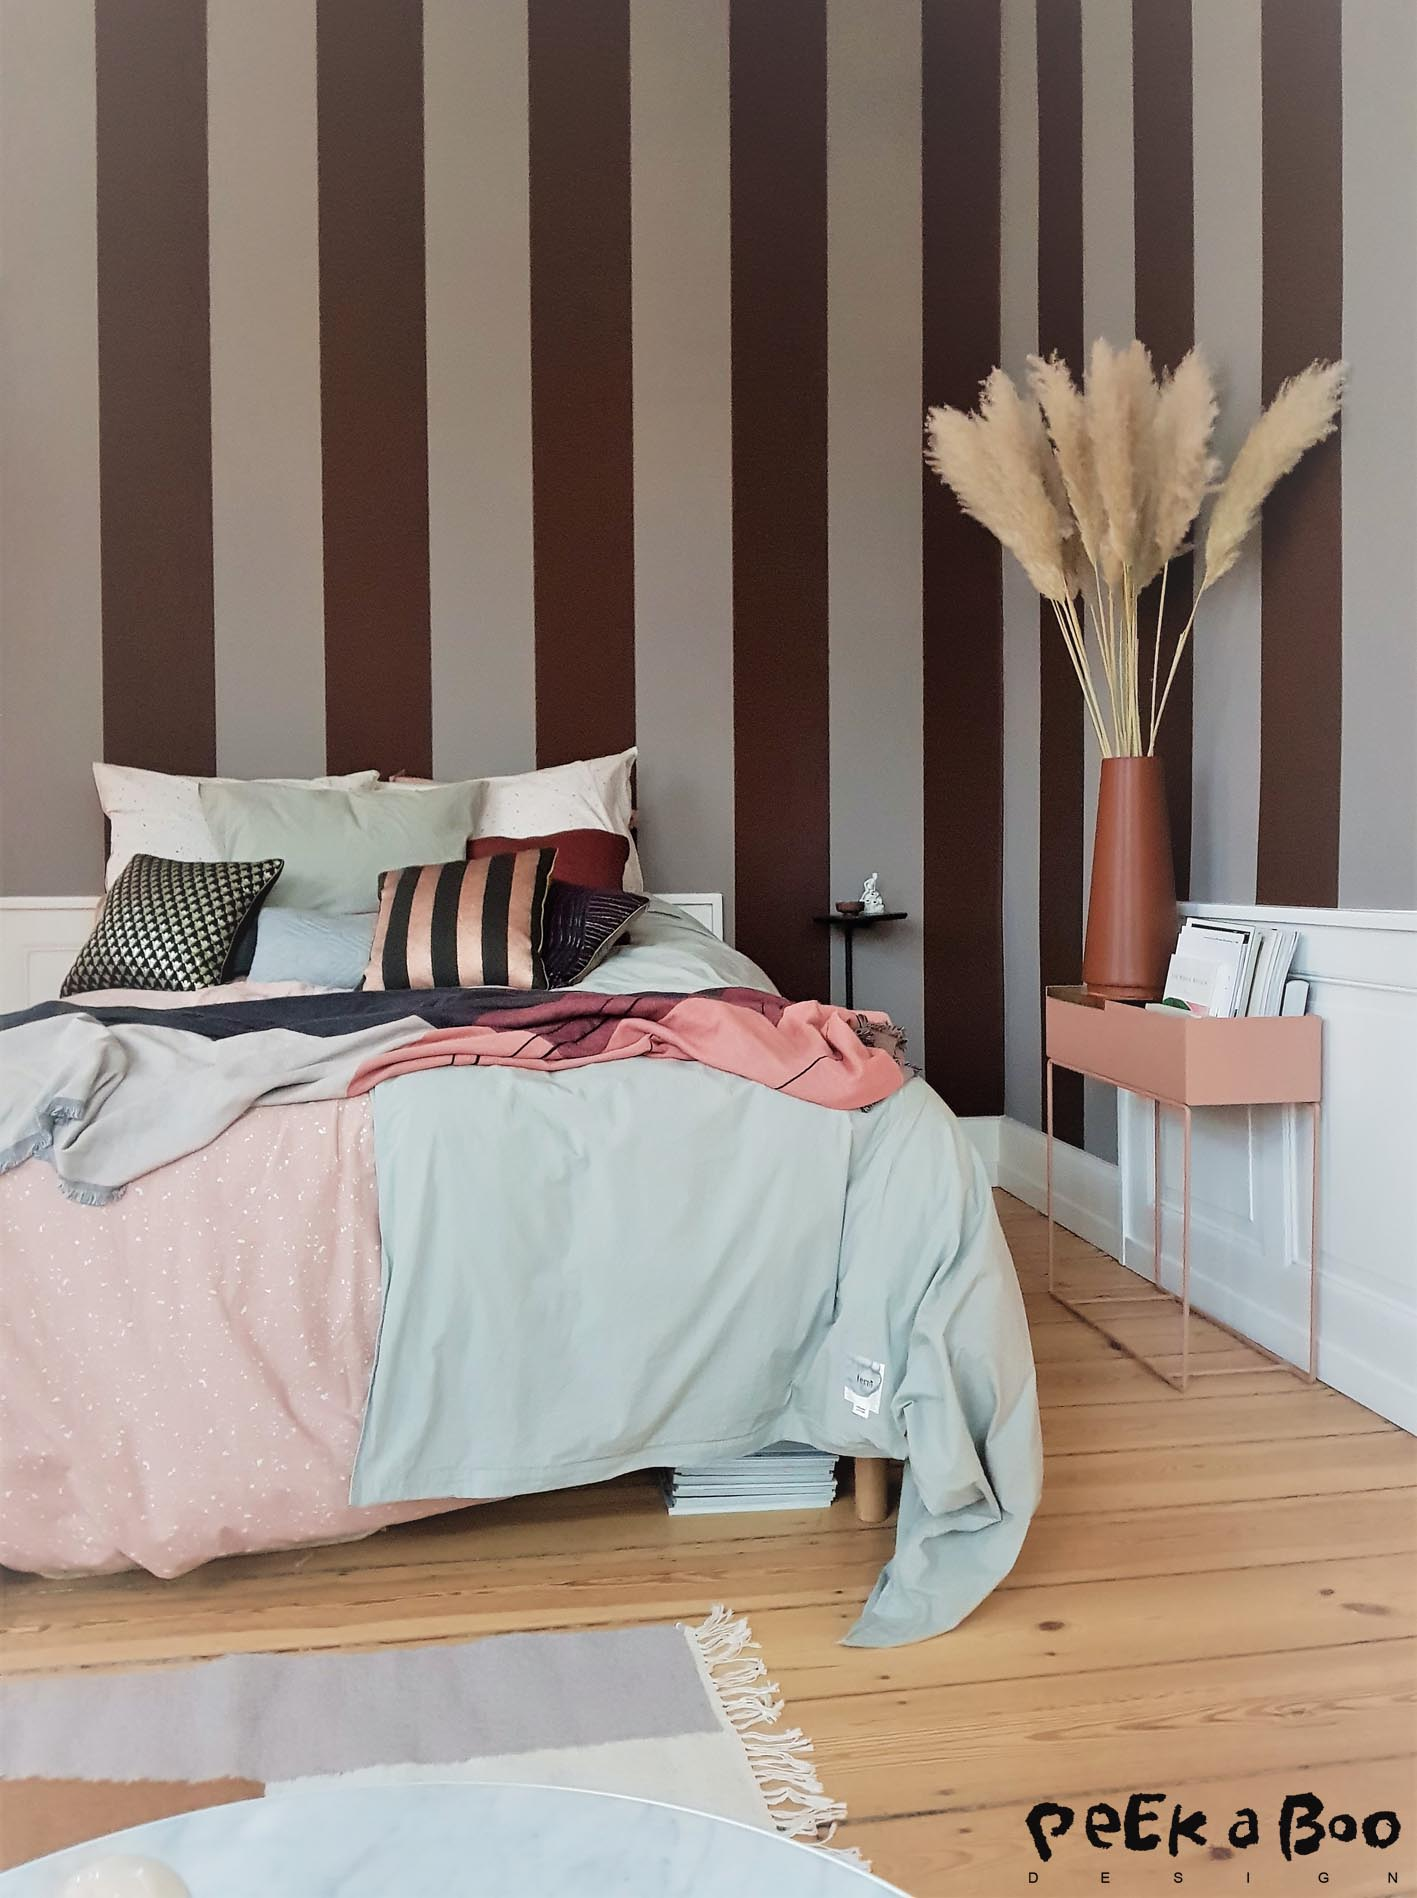 Bedroom dreams, the new striped wallpaper is fantastic.